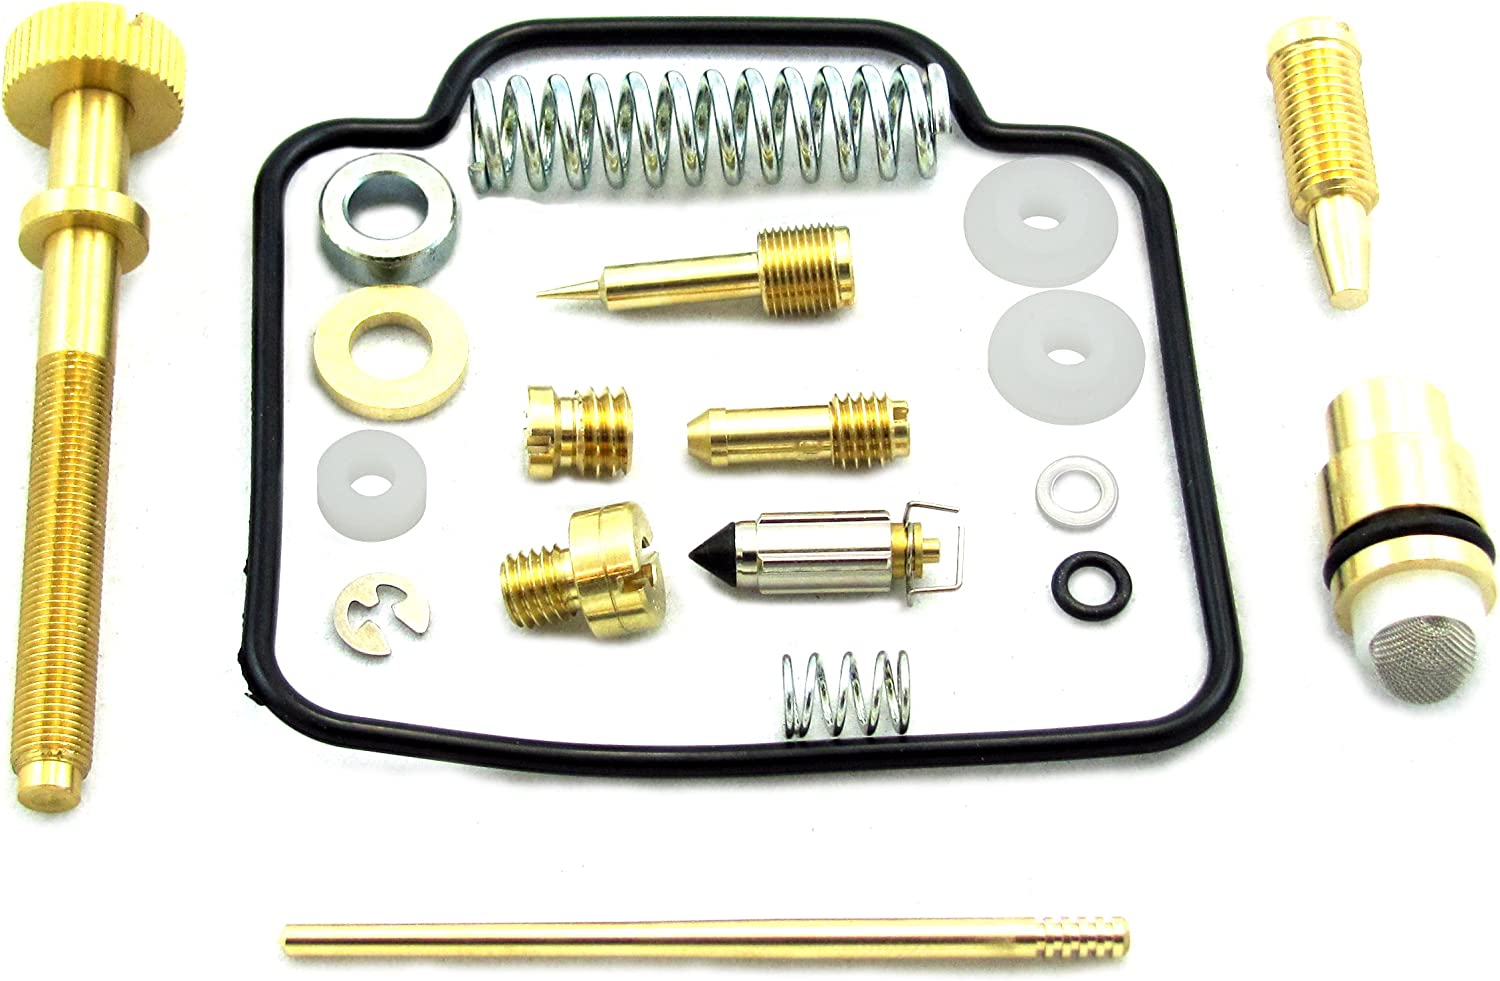 Sportsman 500 Freedom County ATV FC03408 Carburetor Rebuild Kit for Polaris Scrambler 500